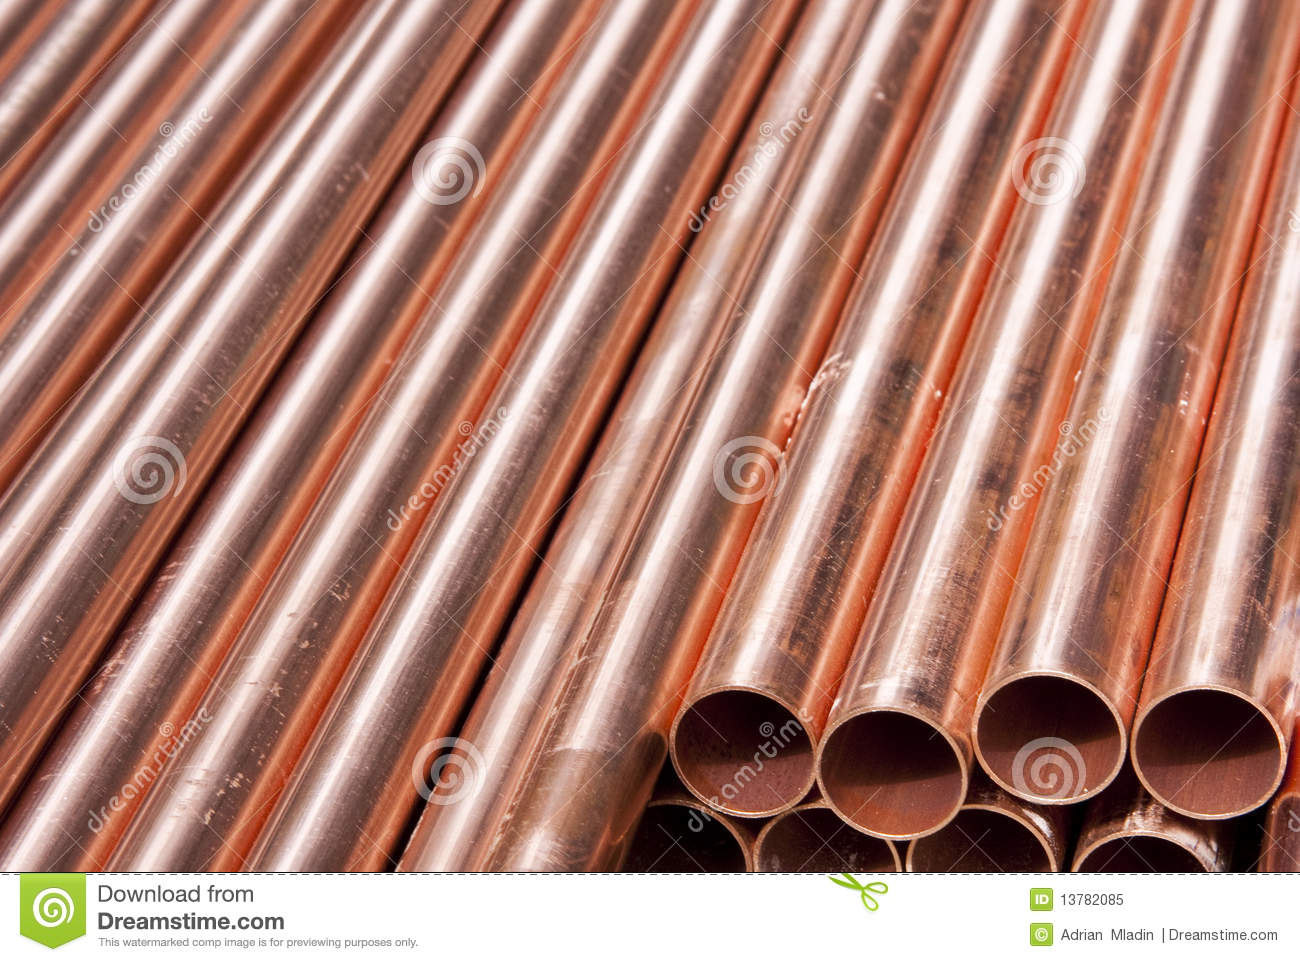 Copper pipes royalty free stock photo image 13782085 for Copper pipes price